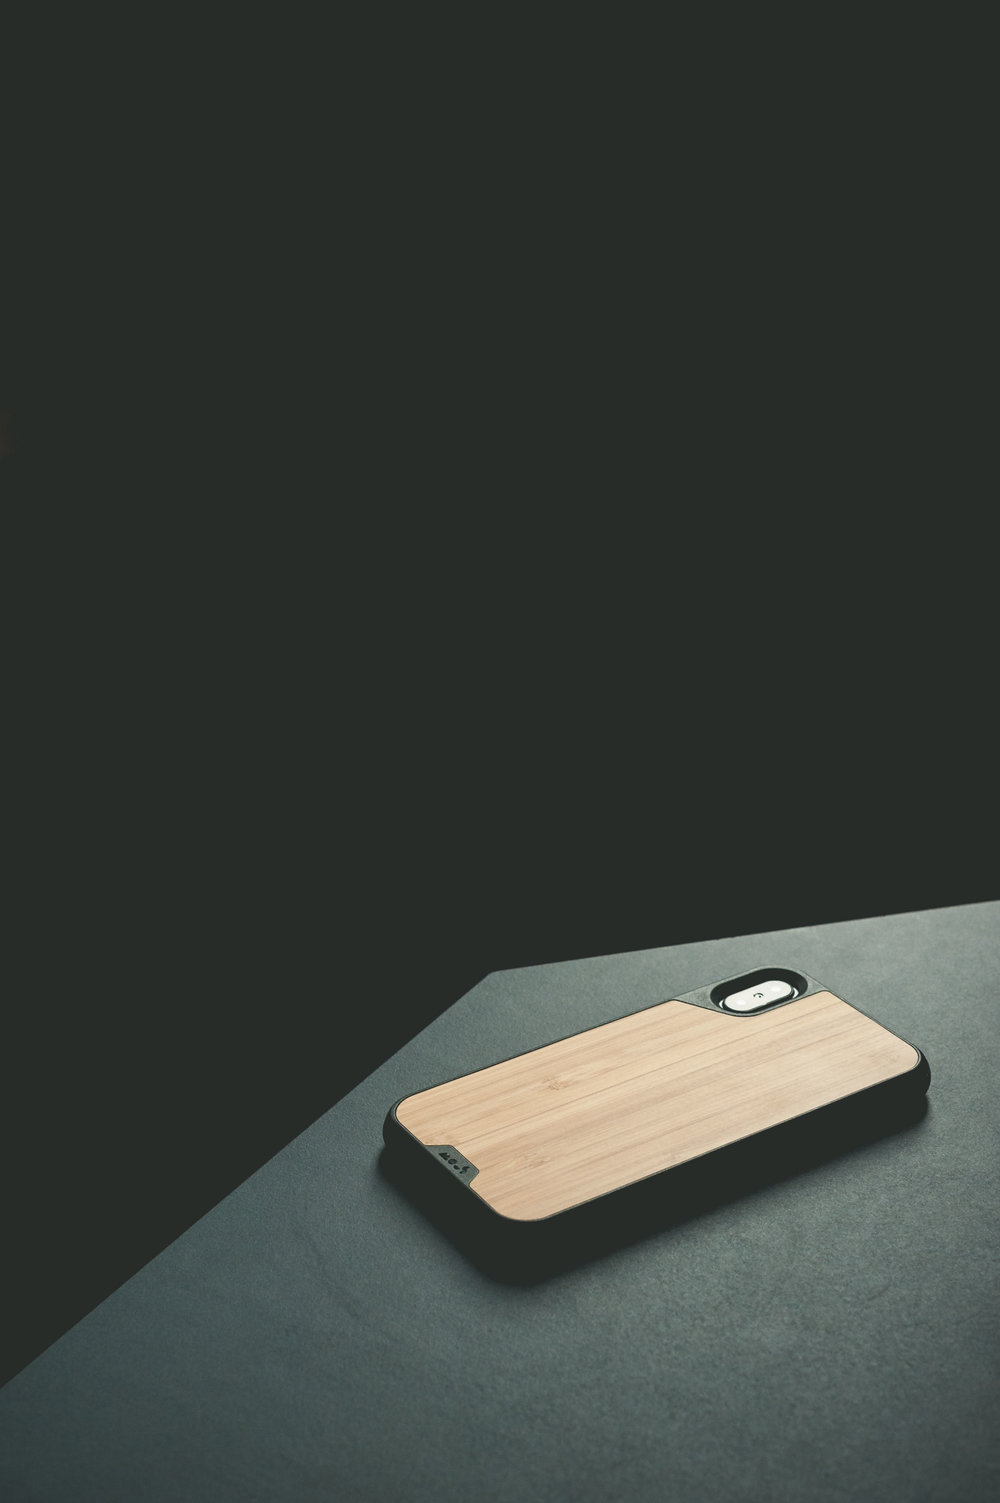 mous-bamboo-iphone-x-case.jpg